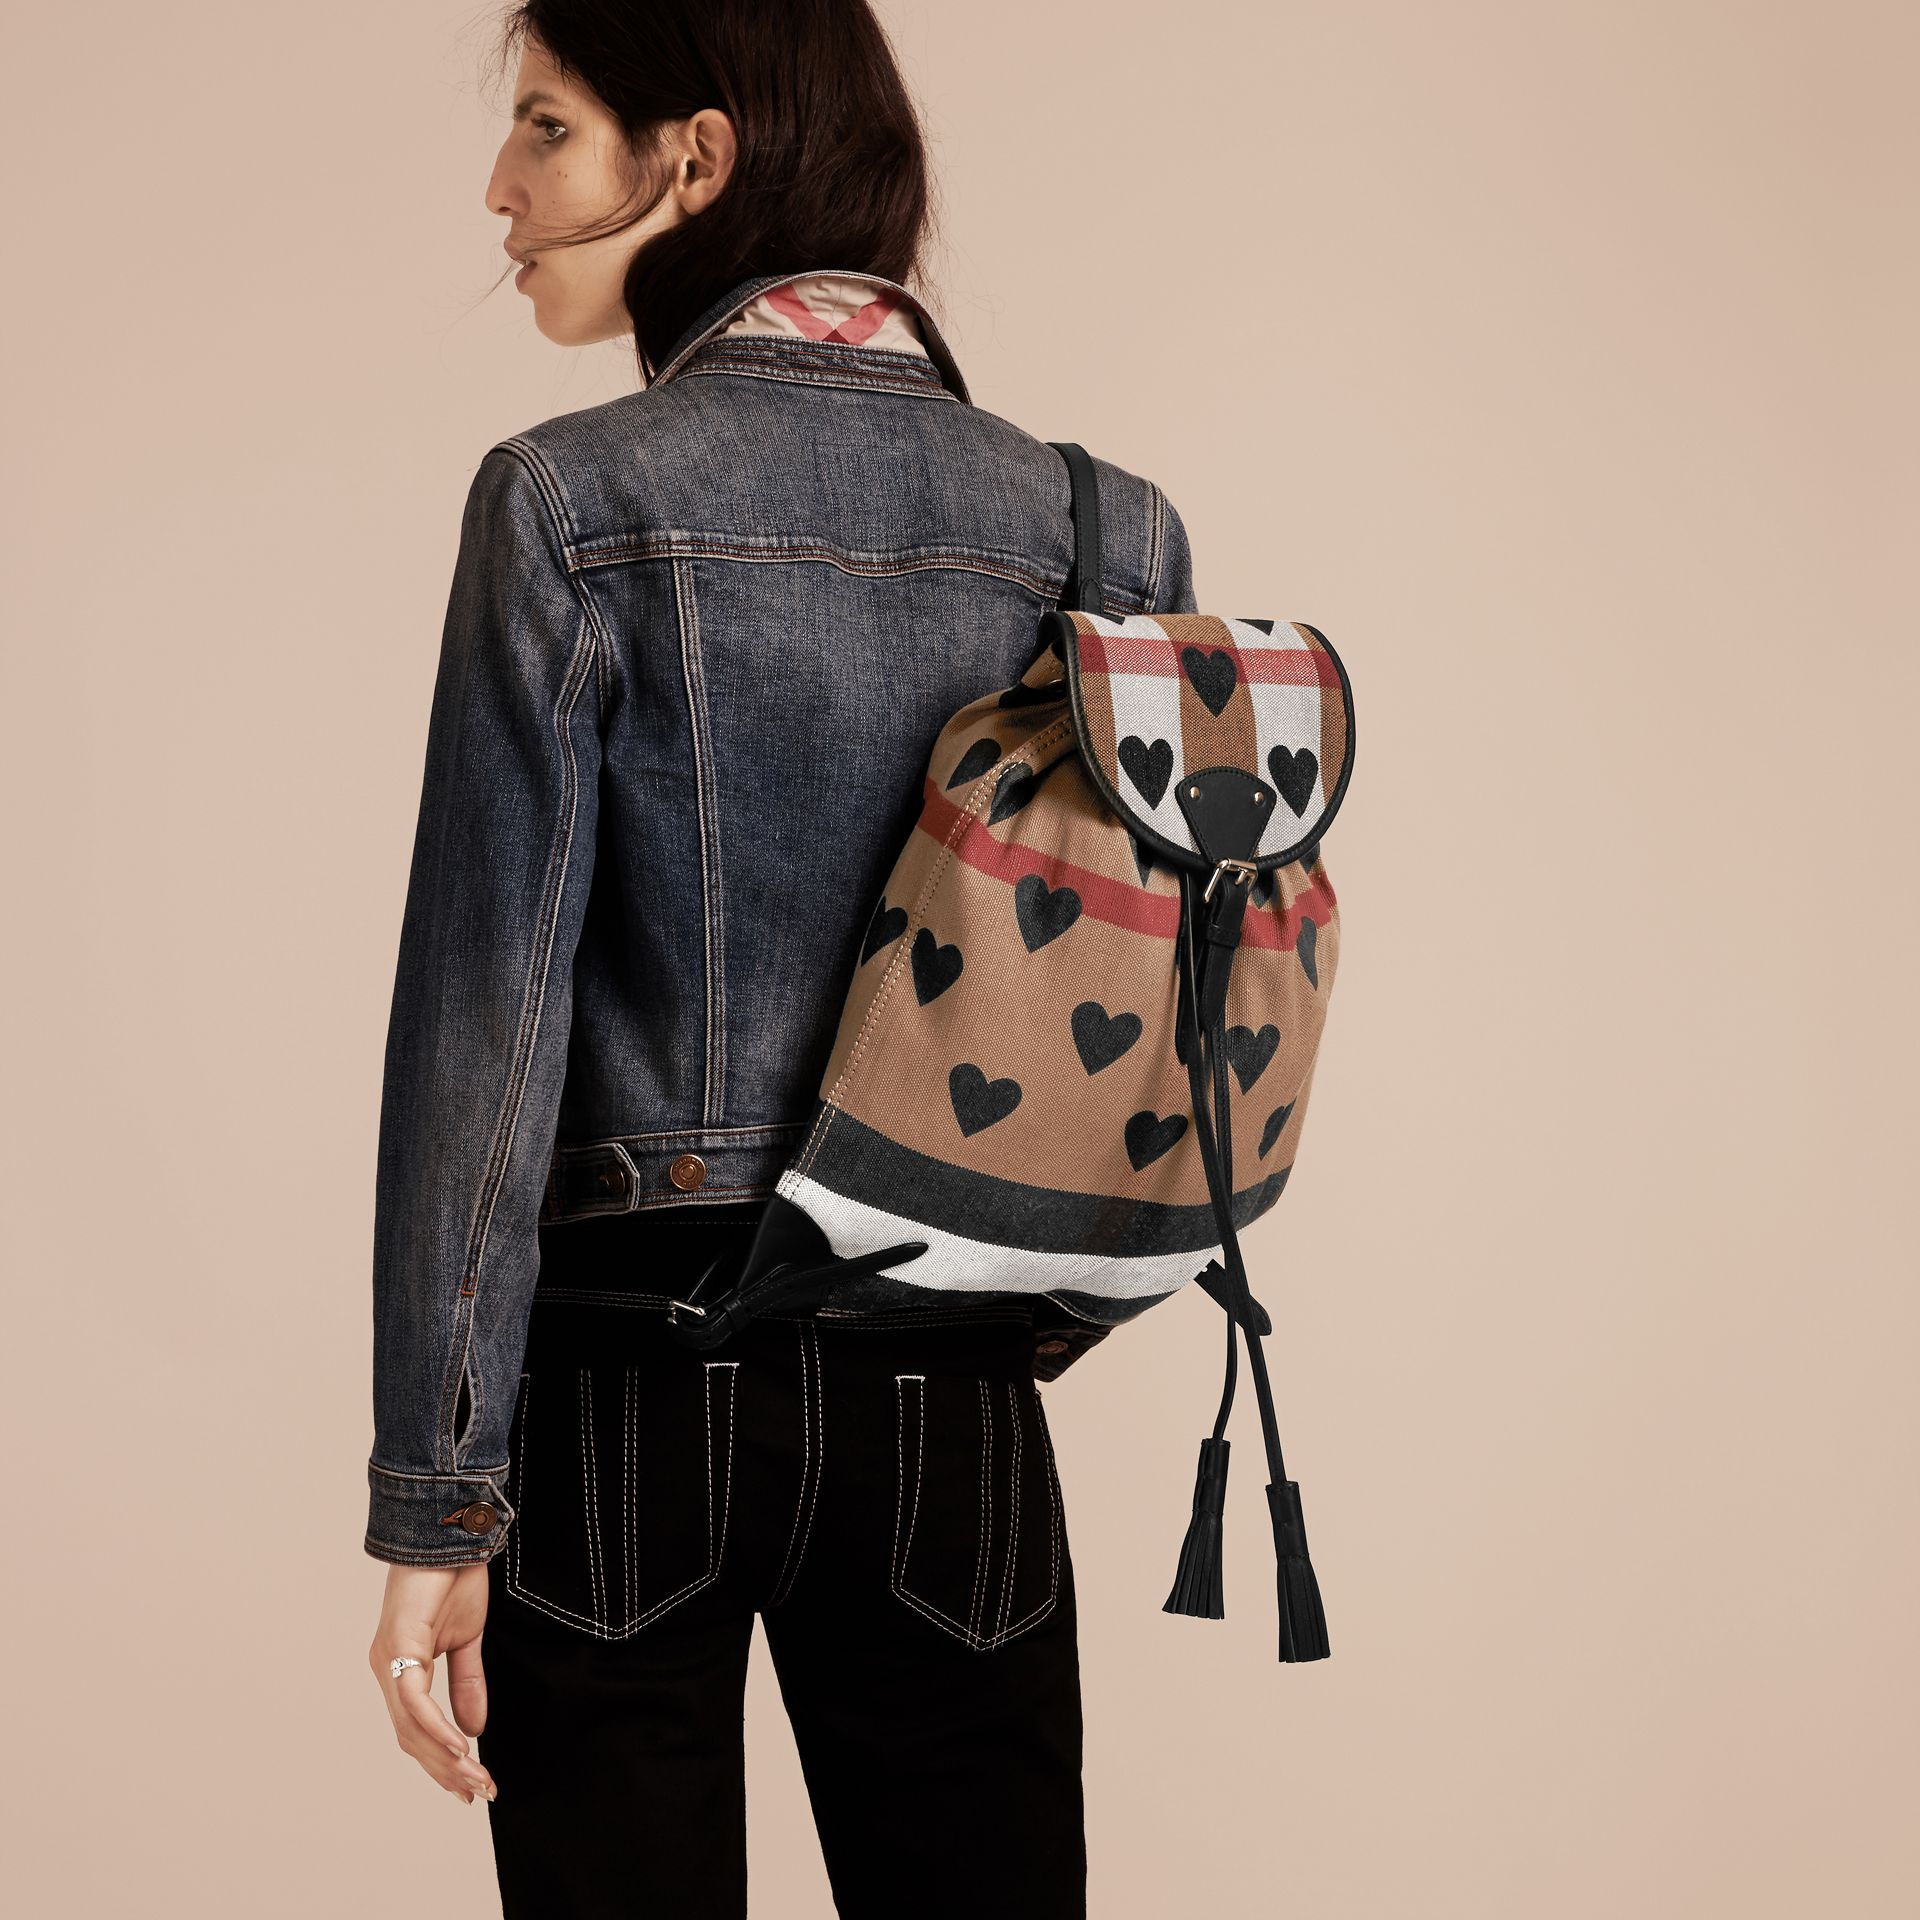 Black Heart Print Canvas Check Backpack with Leather Trim Black - gallery image 3